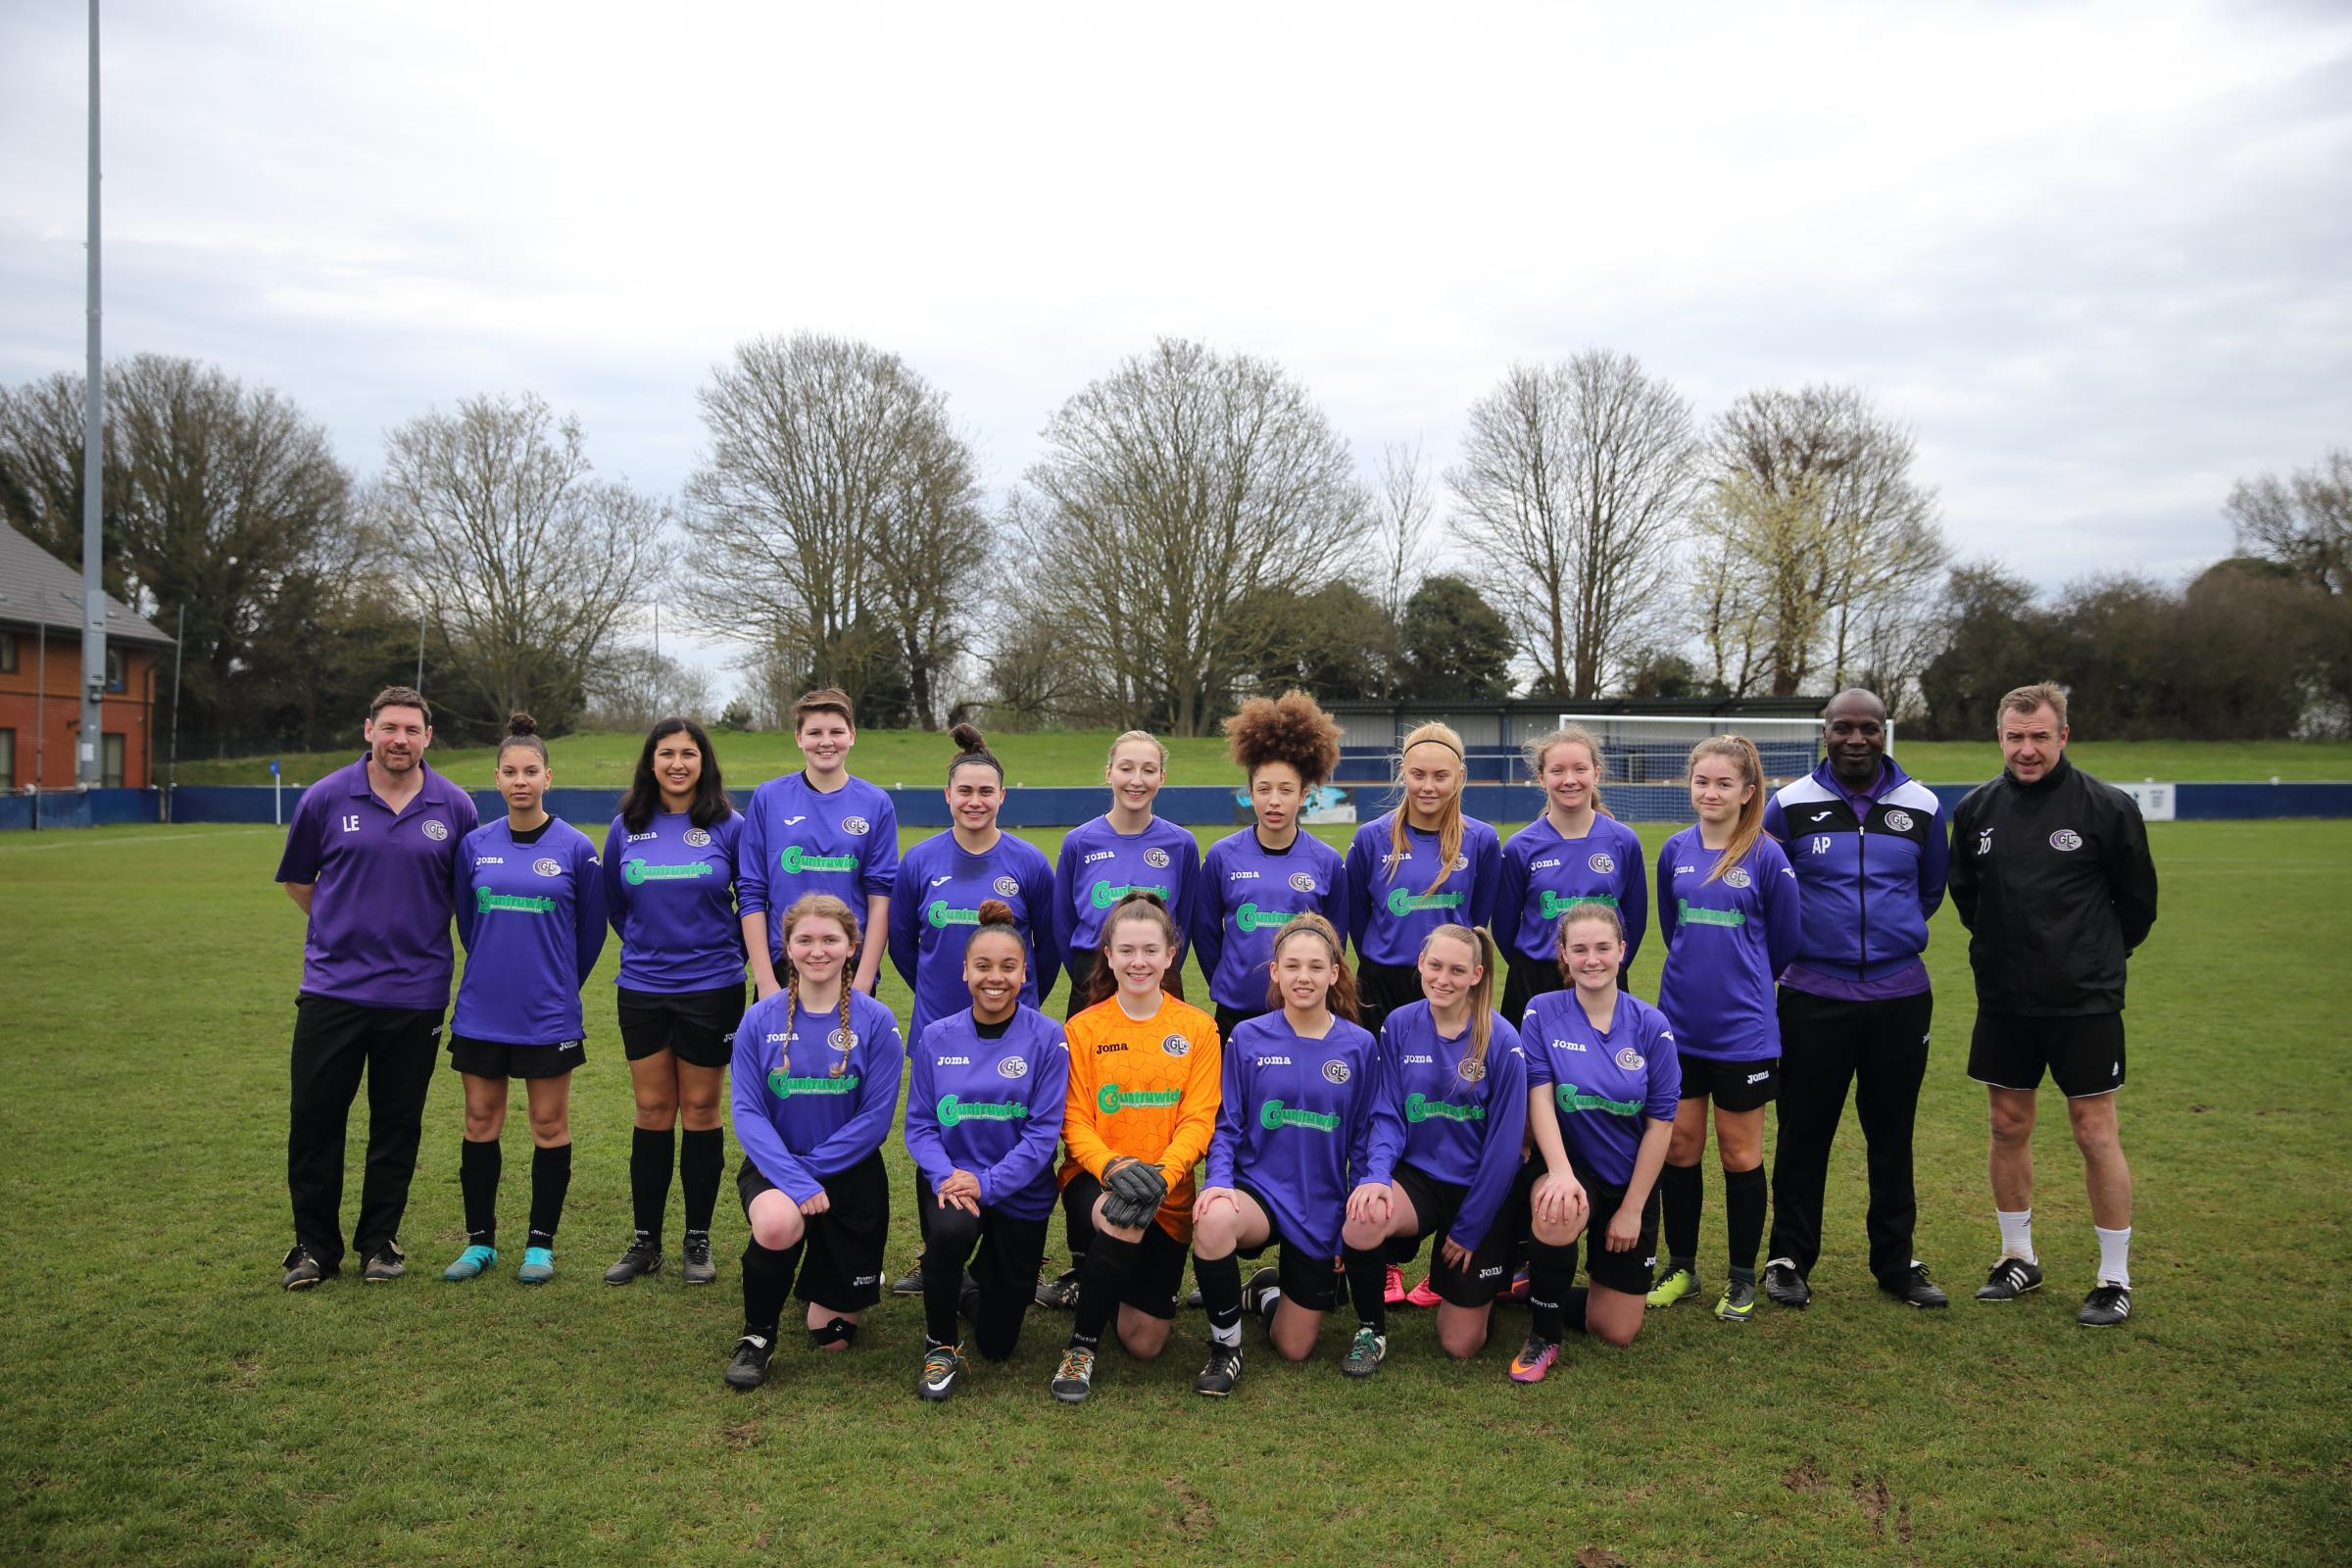 Garston Ladies Under-16 Pumas won the County Cup